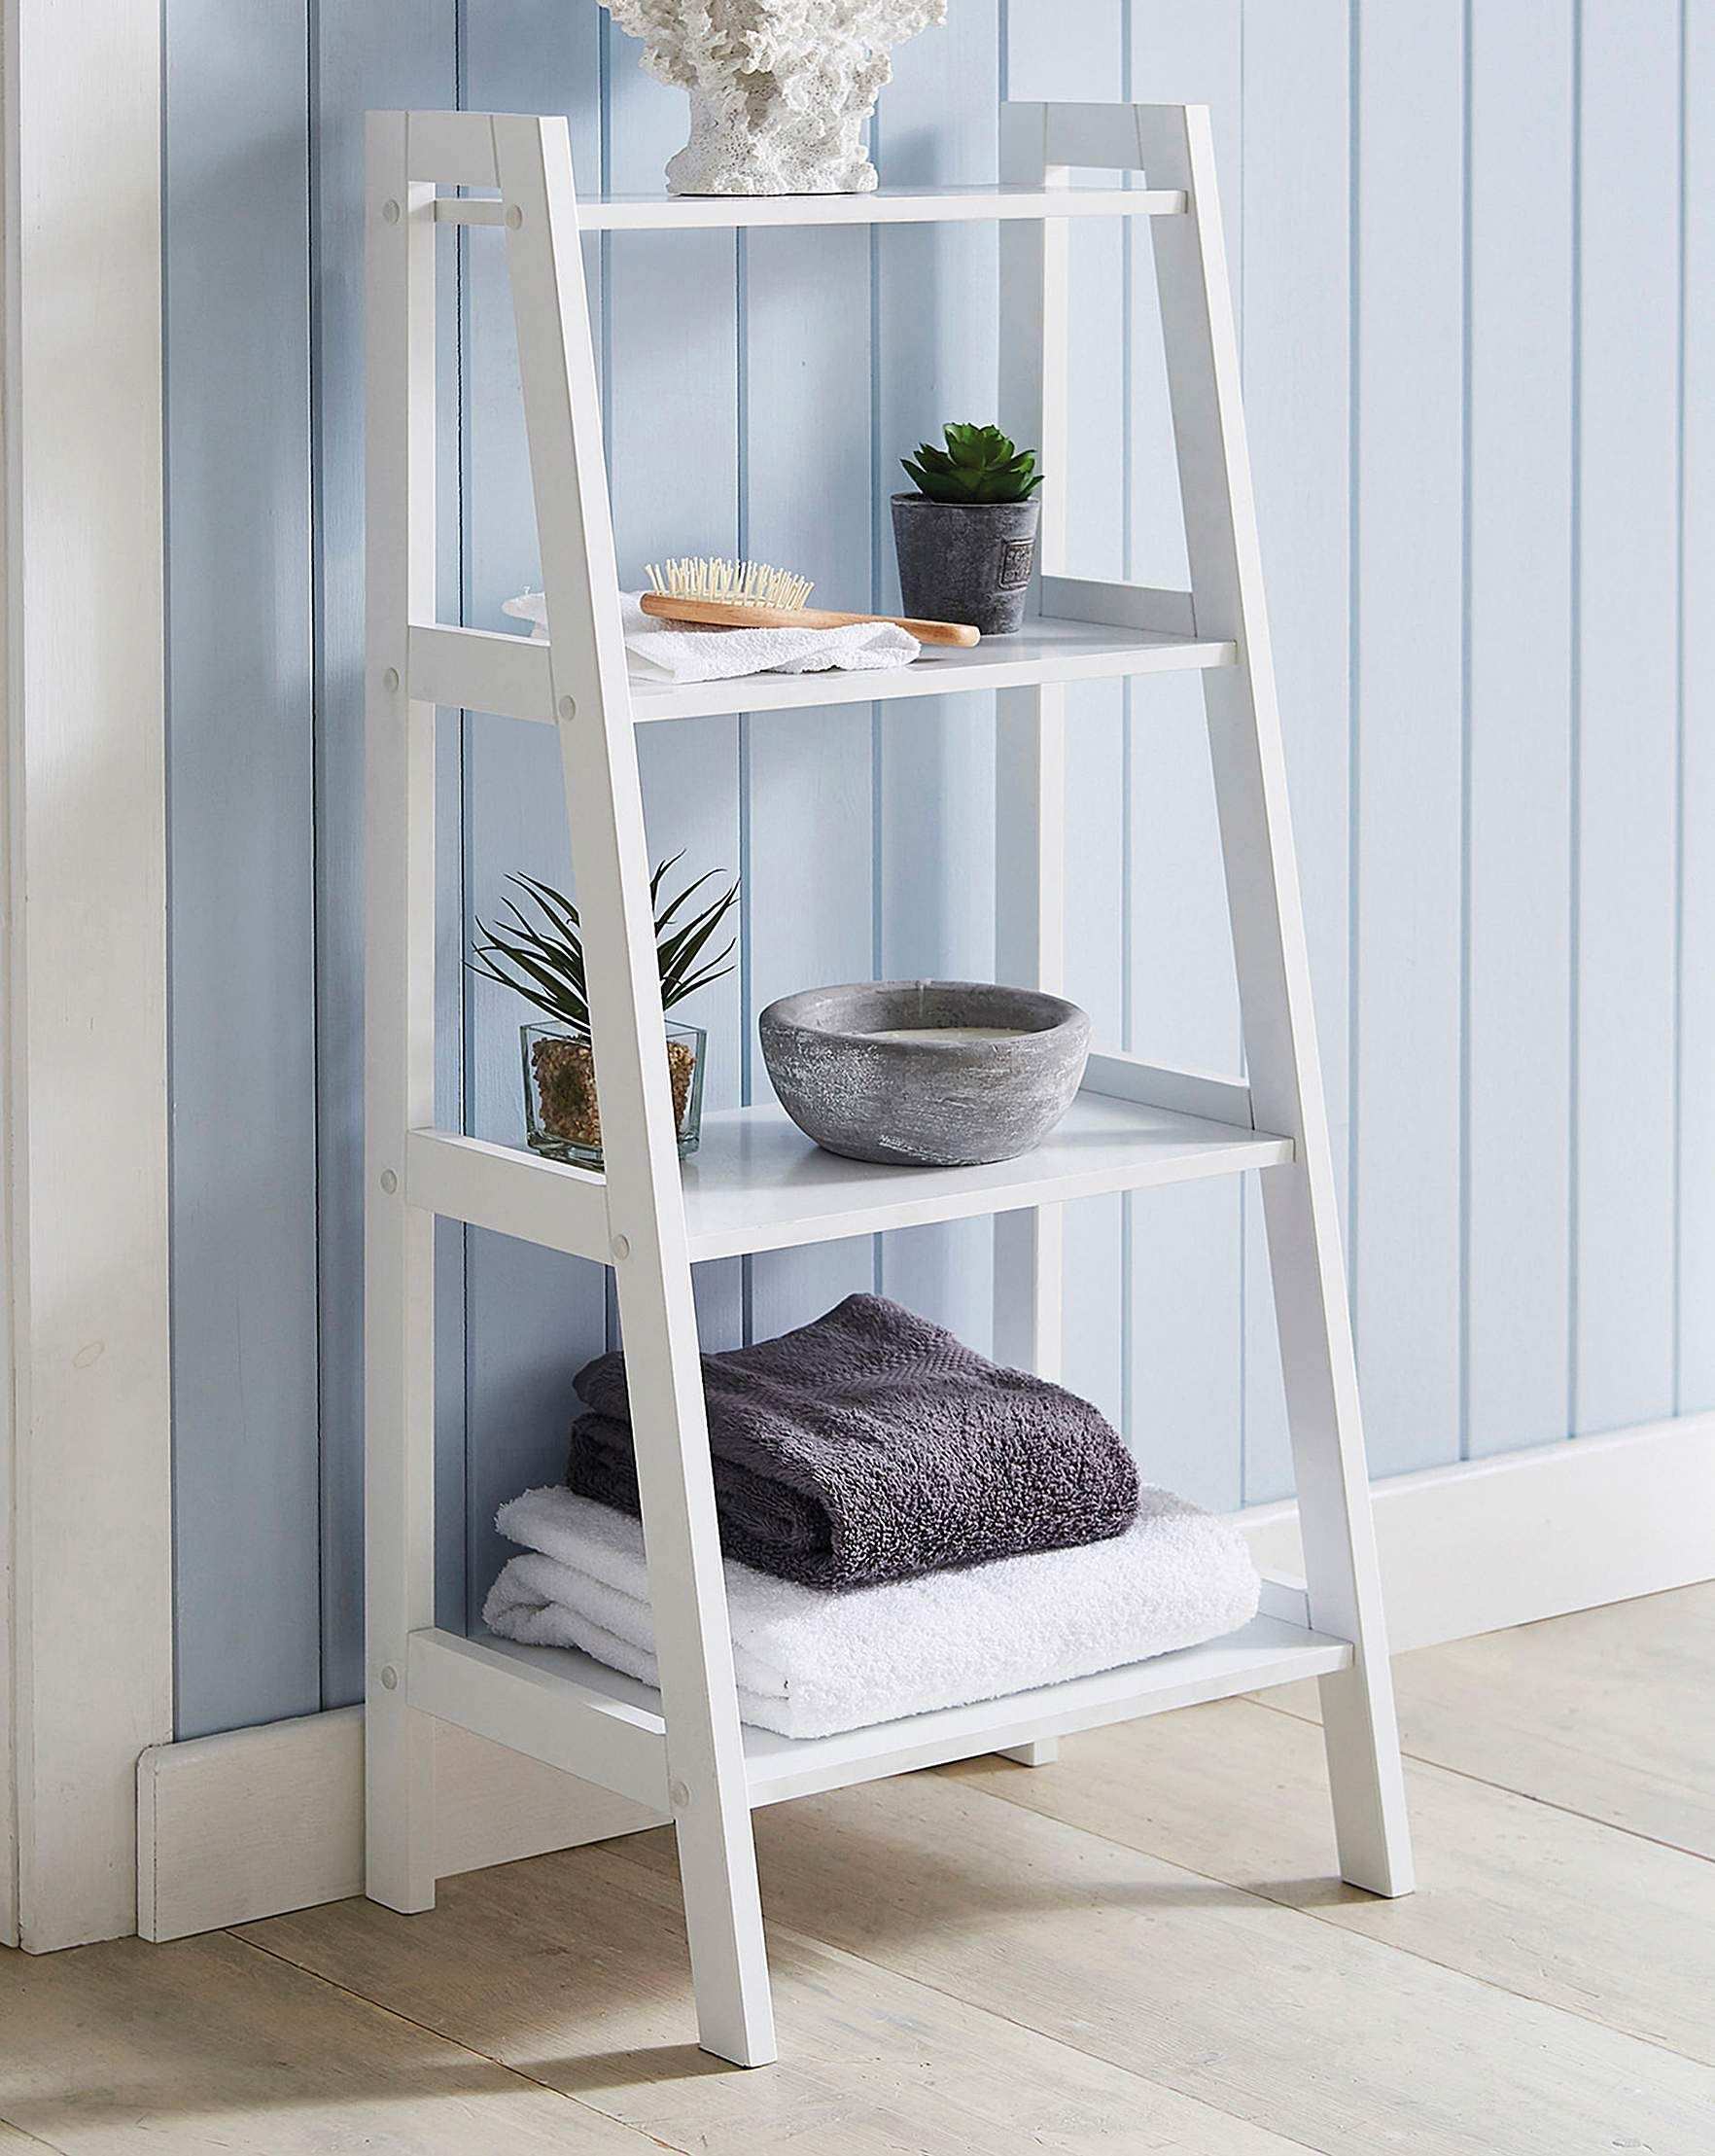 Ladder Shelving Unit | Shelves, Ladder shelving unit ...